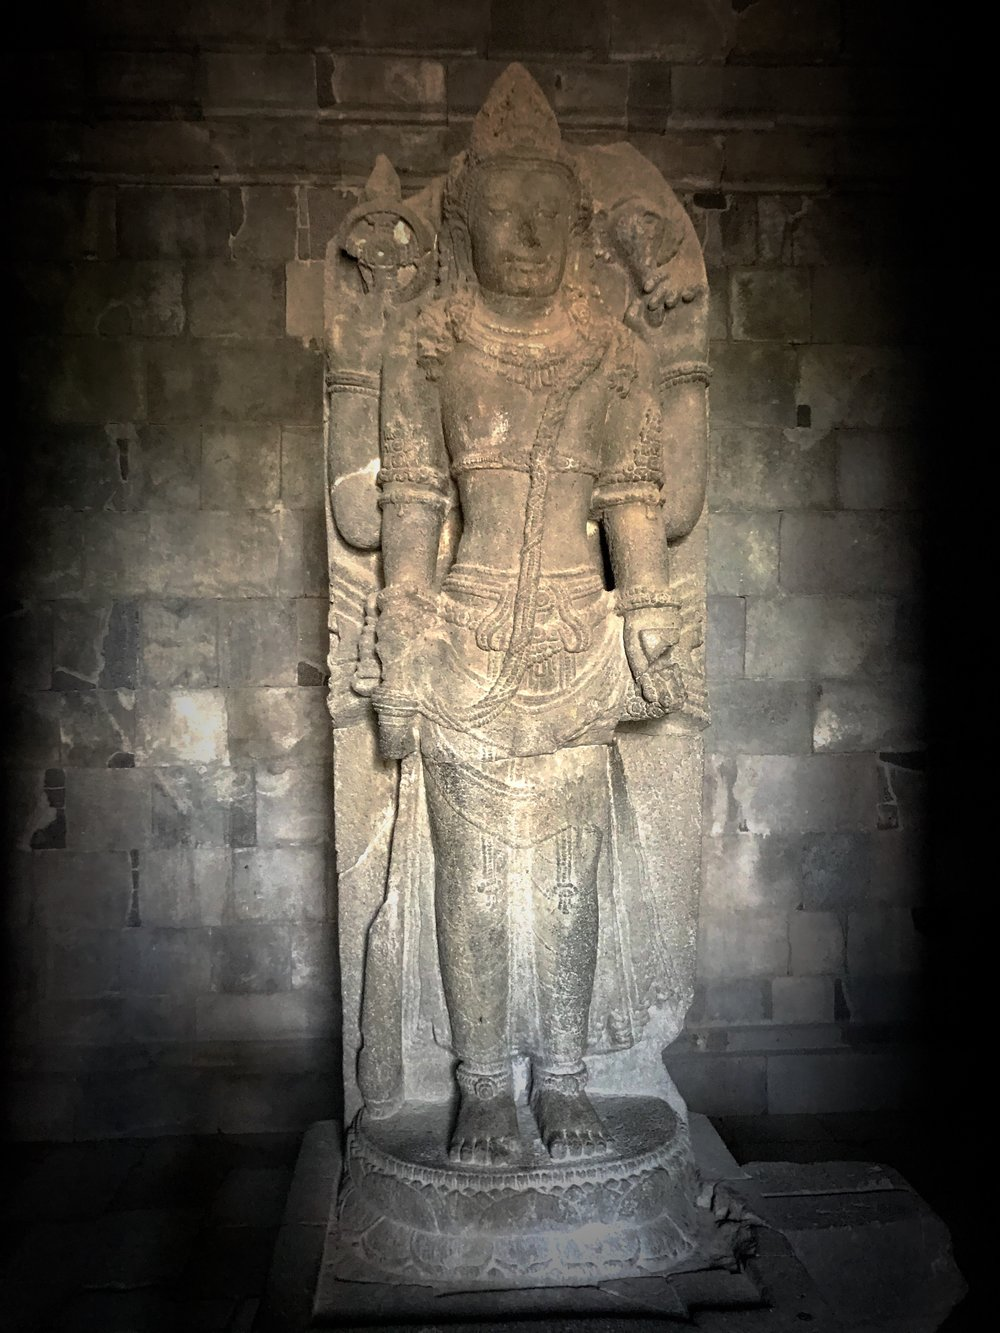 Vishnu the Protector holds a discus and conch shell